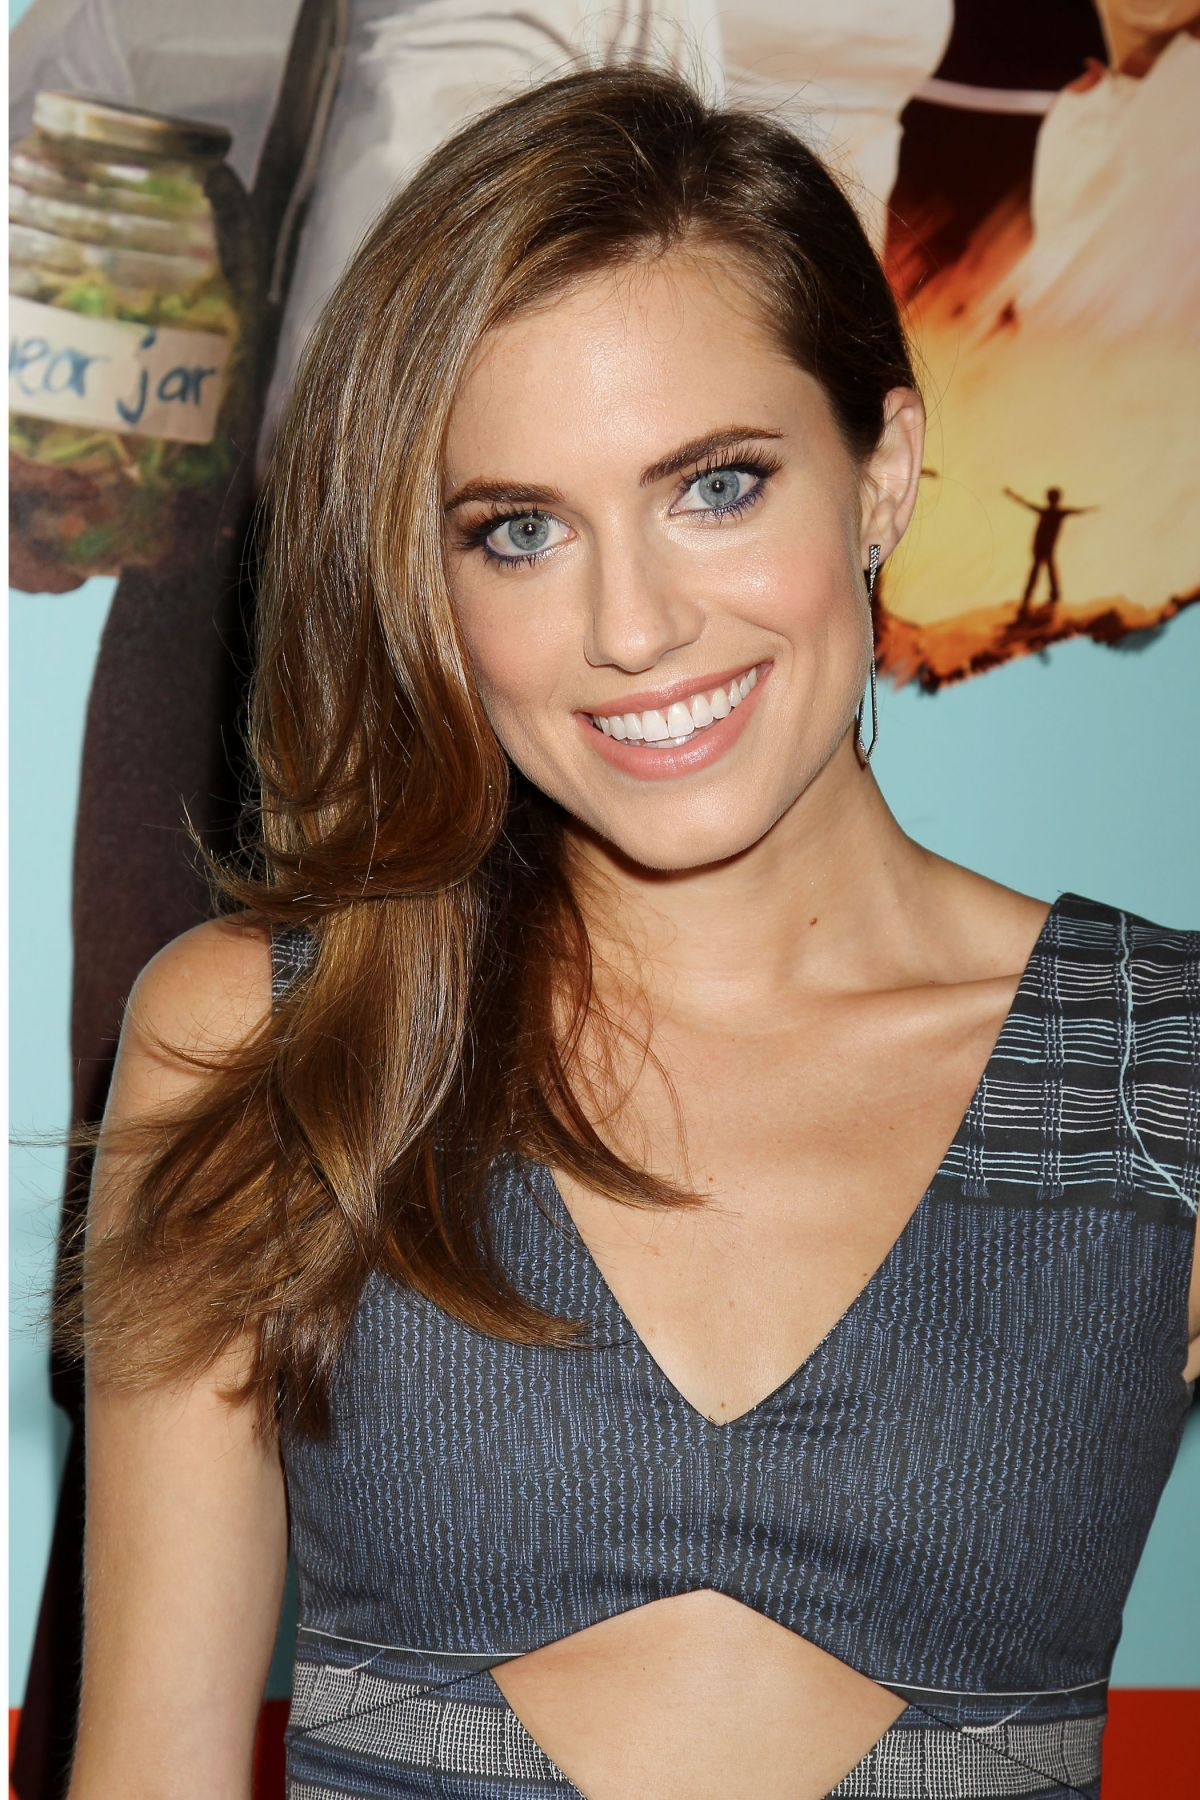 allison williams fatherallison williams gif, allison williams peter pan, allison williams interview, allison williams birth chart, allison williams tumblr, allison williams wiki, allison williams gif tumblr, allison williams lena dunham, allison williams engagement ring, allison williams brother, allison williams dad, allison williams shoe size, allison williams father, allison williams bio, allison williams facts, allison williams stephen colbert dress, allison williams singing, allison williams tom hanks, allison williams imdb, allison williams youtube